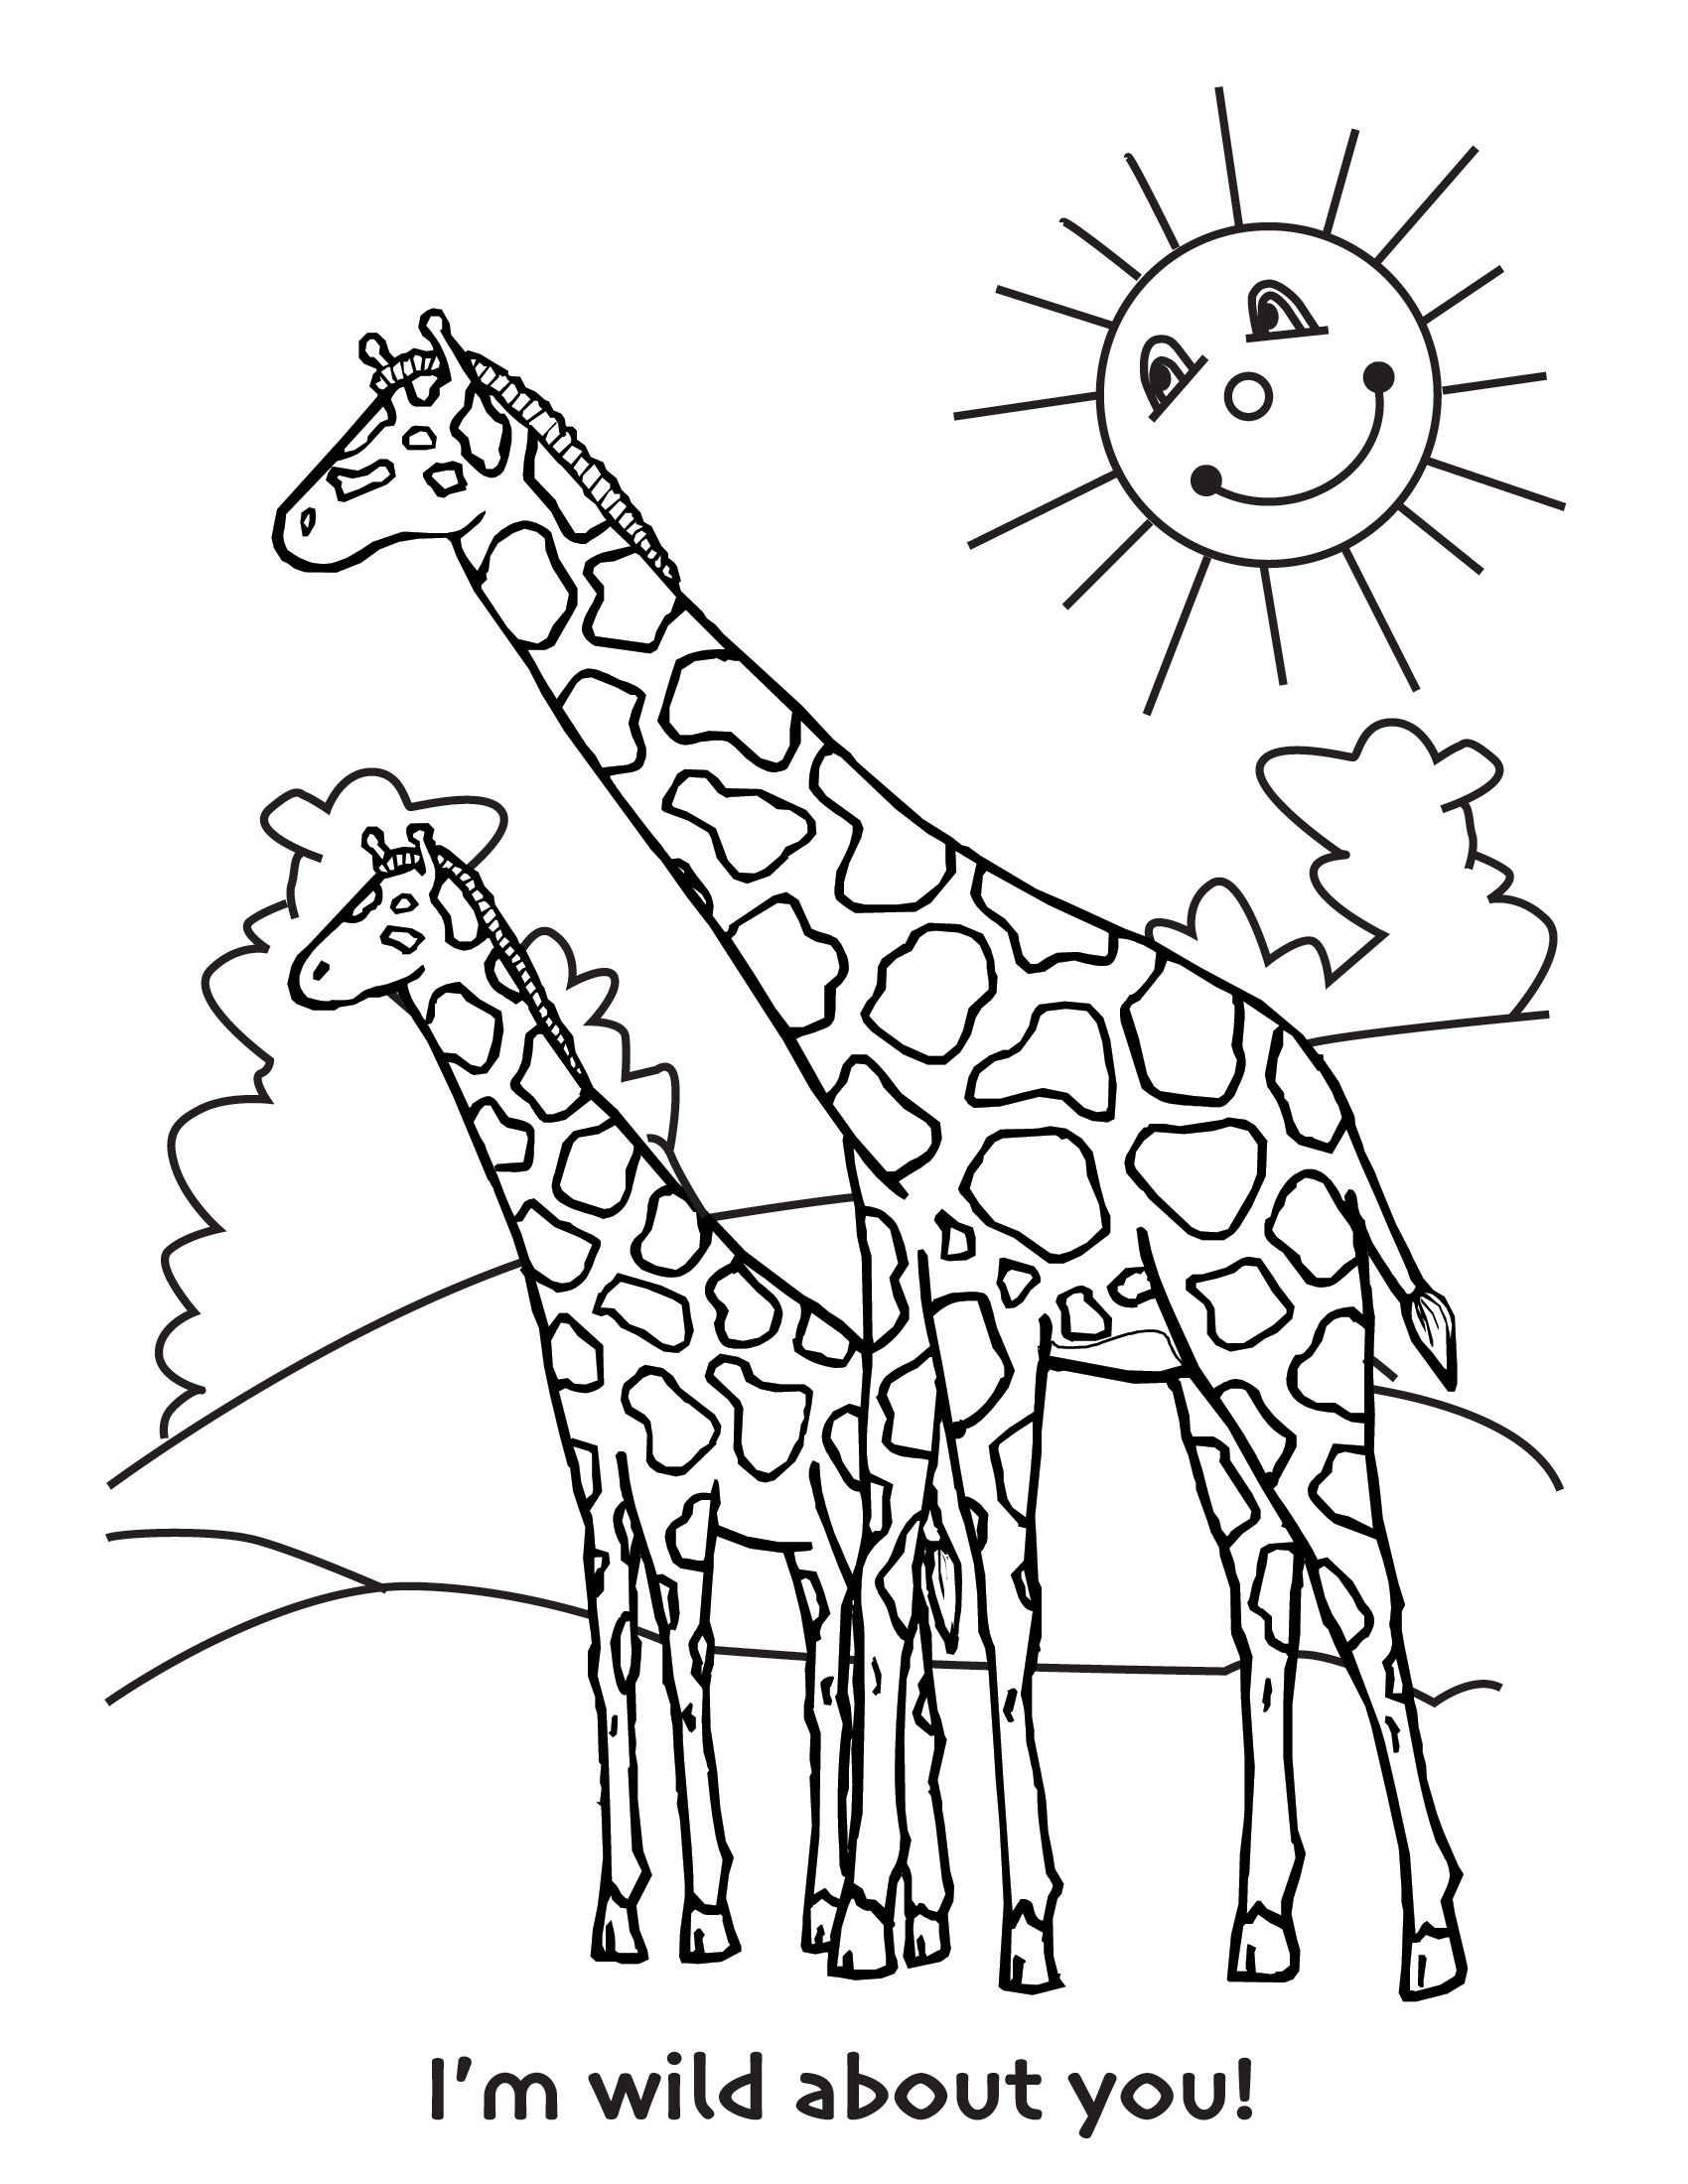 Free Printable Giraffe Coloring Pages For Kids Giraffe Coloring Pages In A Giraffe Coloring Pages Farm Animal Coloring Pages Printable Christmas Coloring Pages